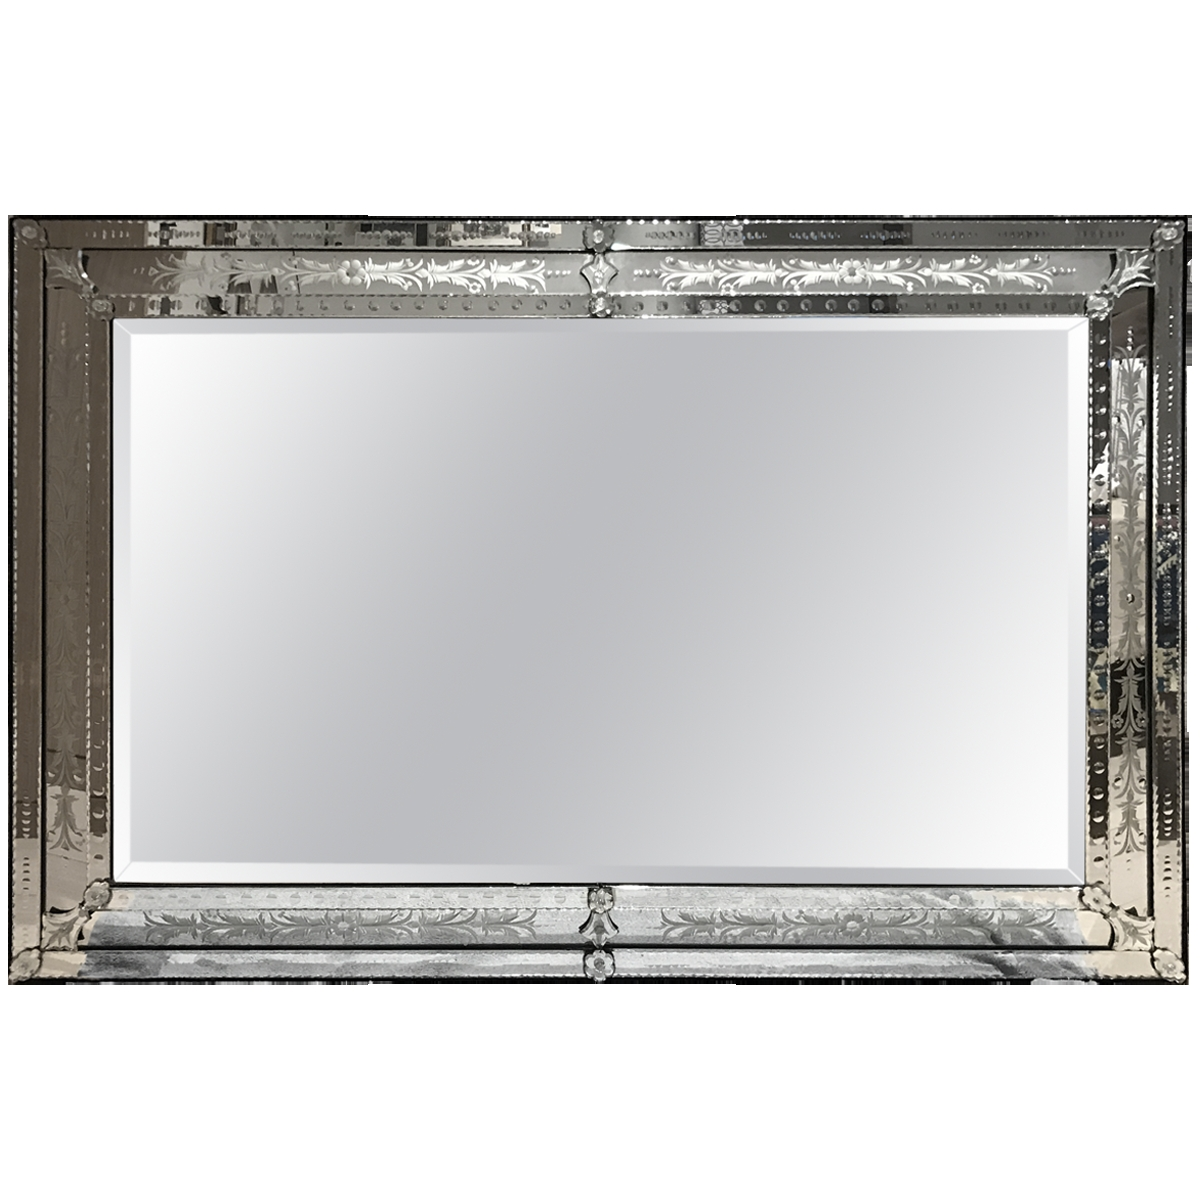 Viyet Designer Furniture Accessories Vintage Large Etched With Large Venetian Mirror (View 10 of 15)